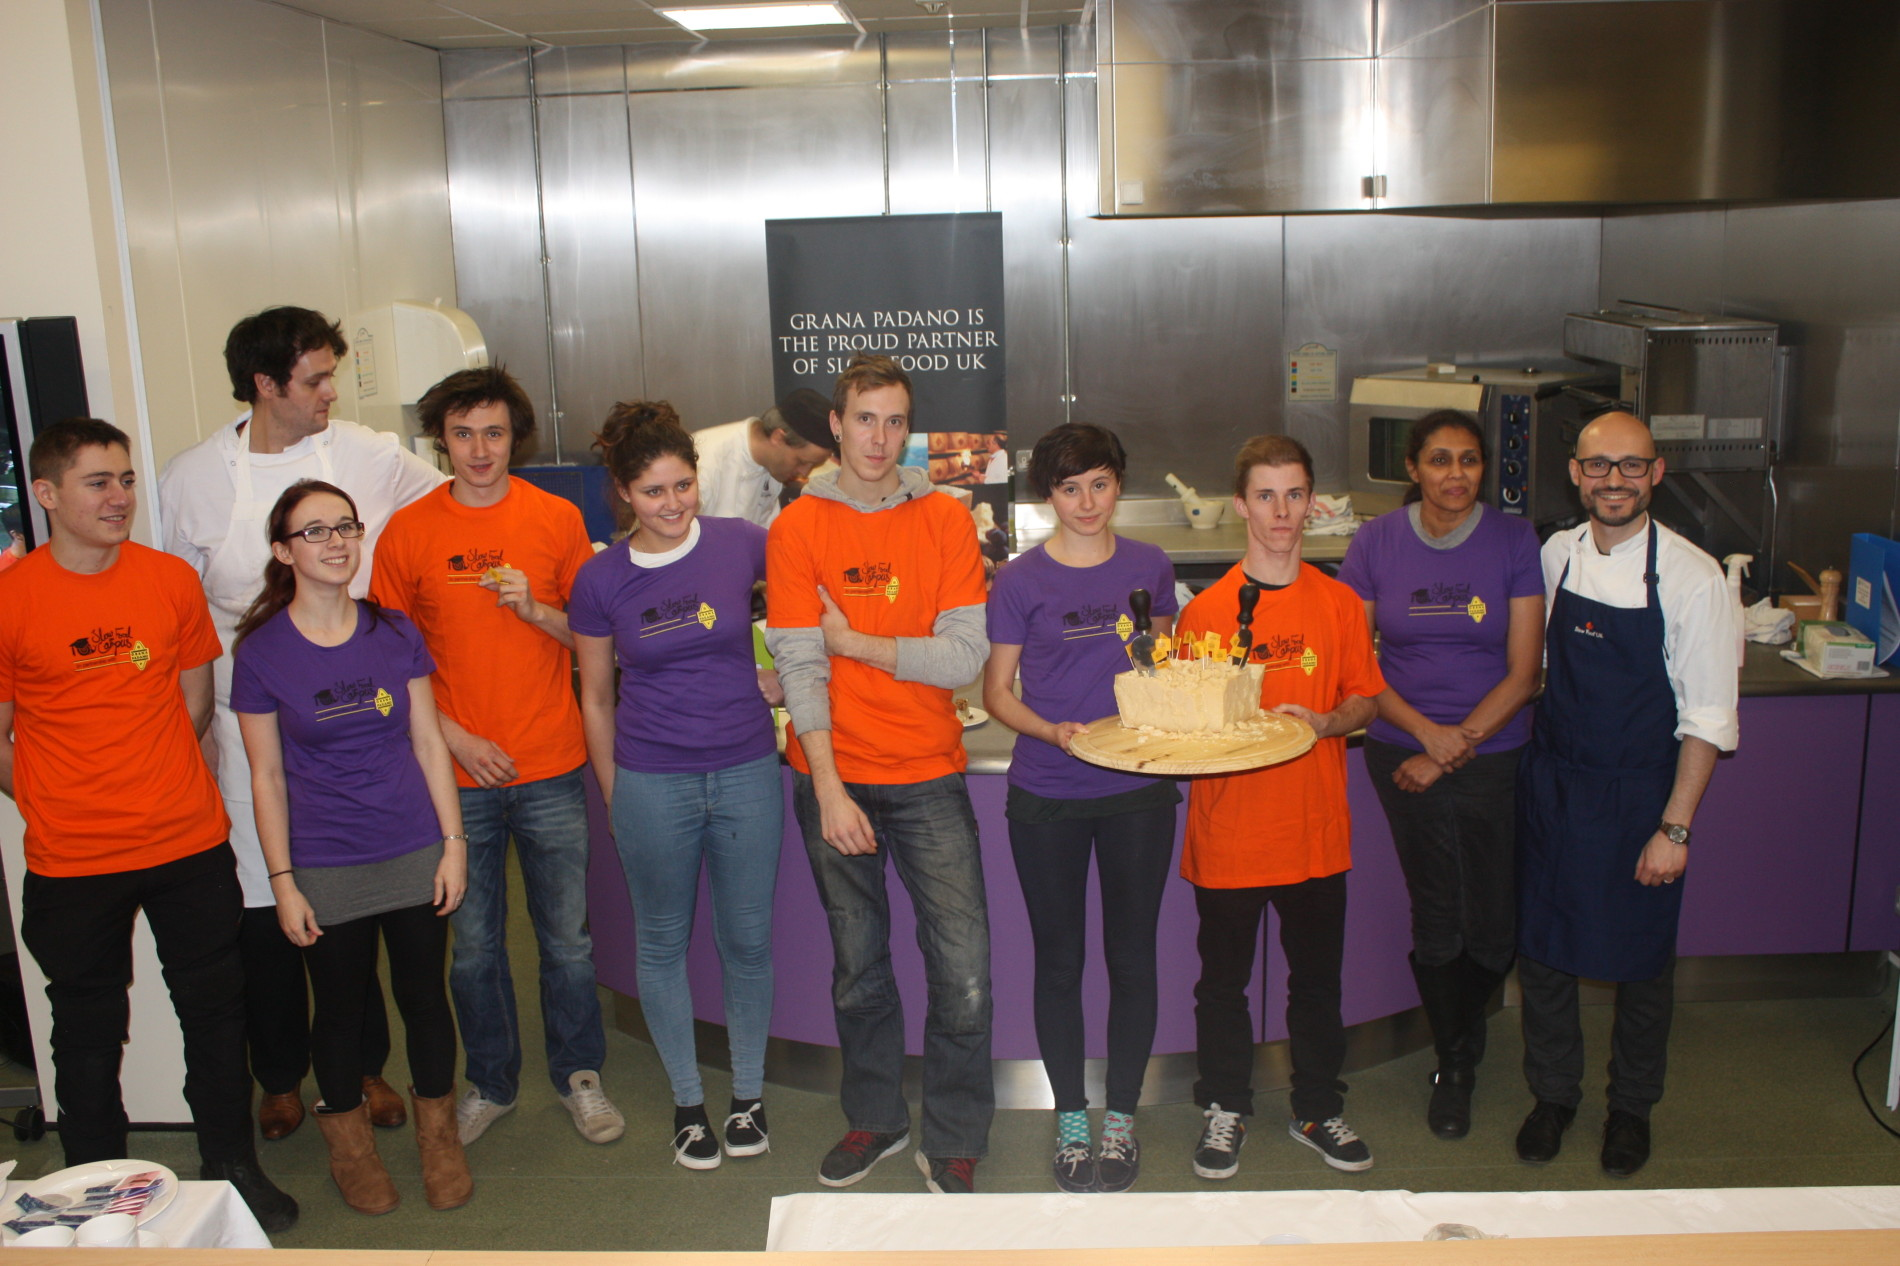 New Slow Food On Campus group launched at UWL